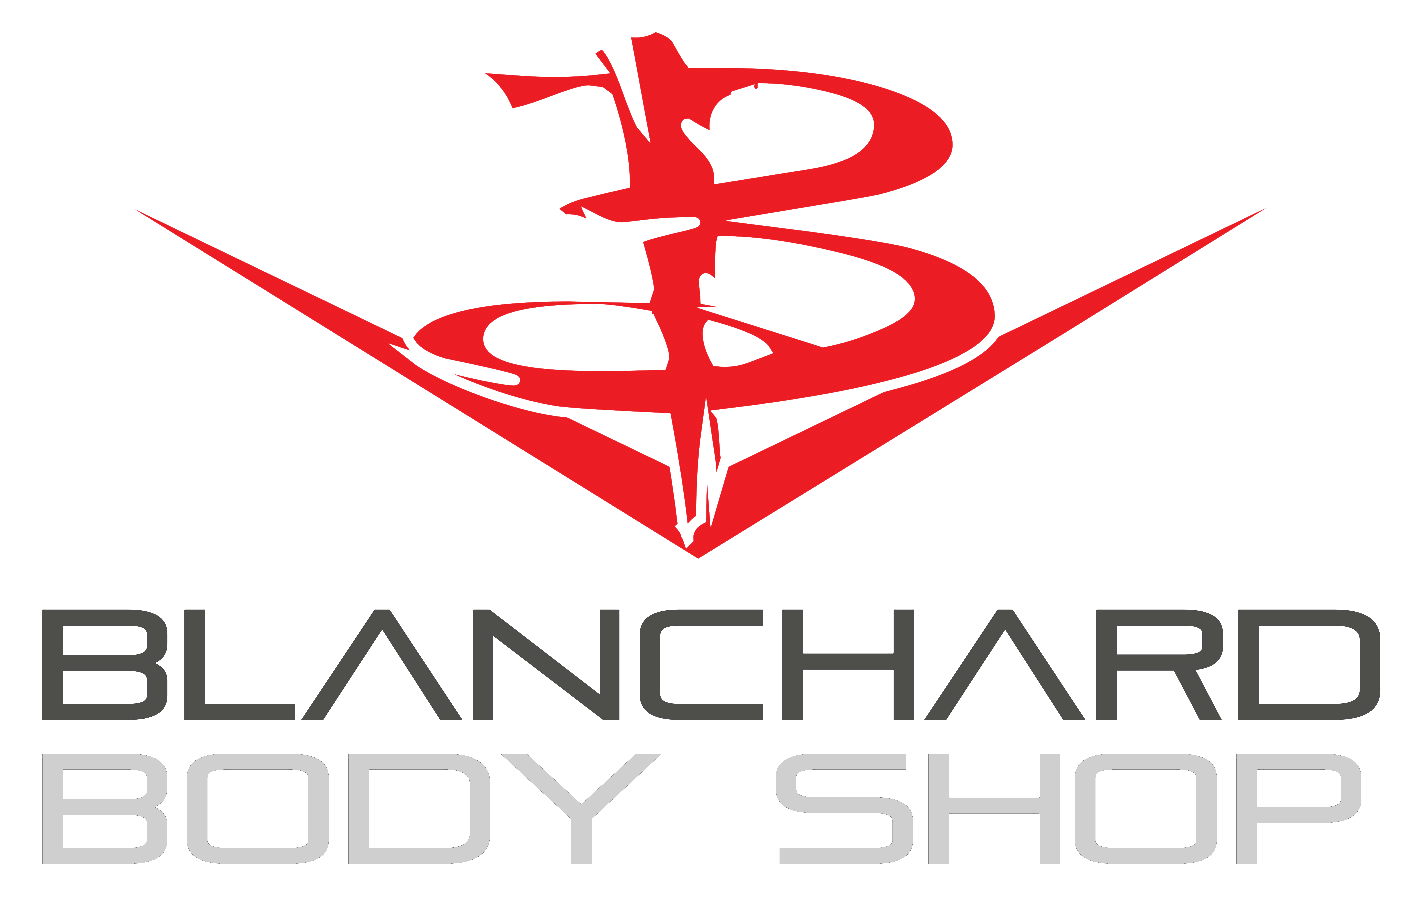 Blanchard Body Shop